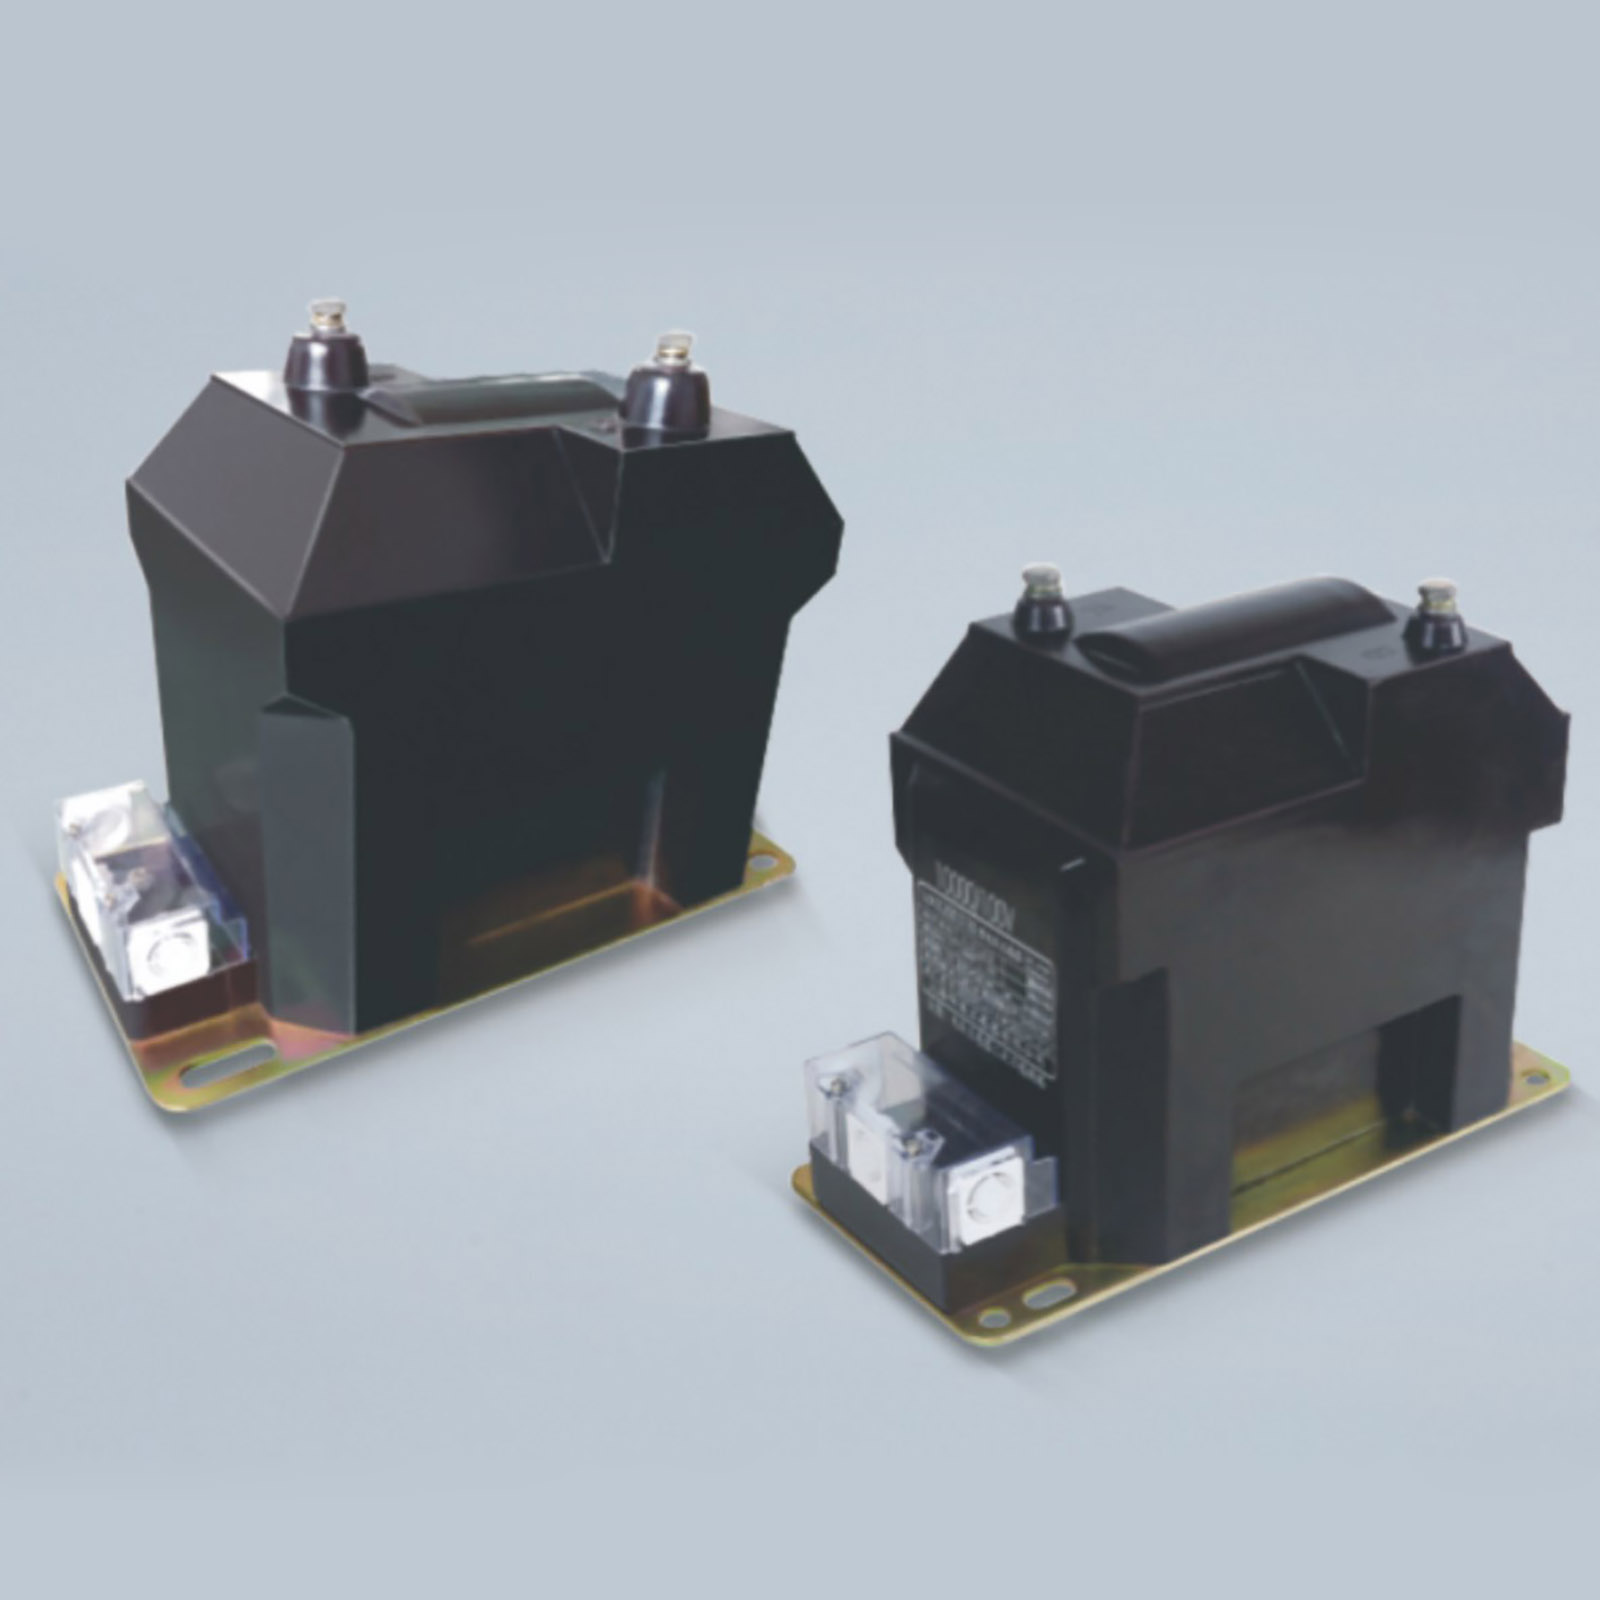 JDZ10-3,6,10; JDZF10-3,6,10 Single-phase, fully-encolsed voltage transformers